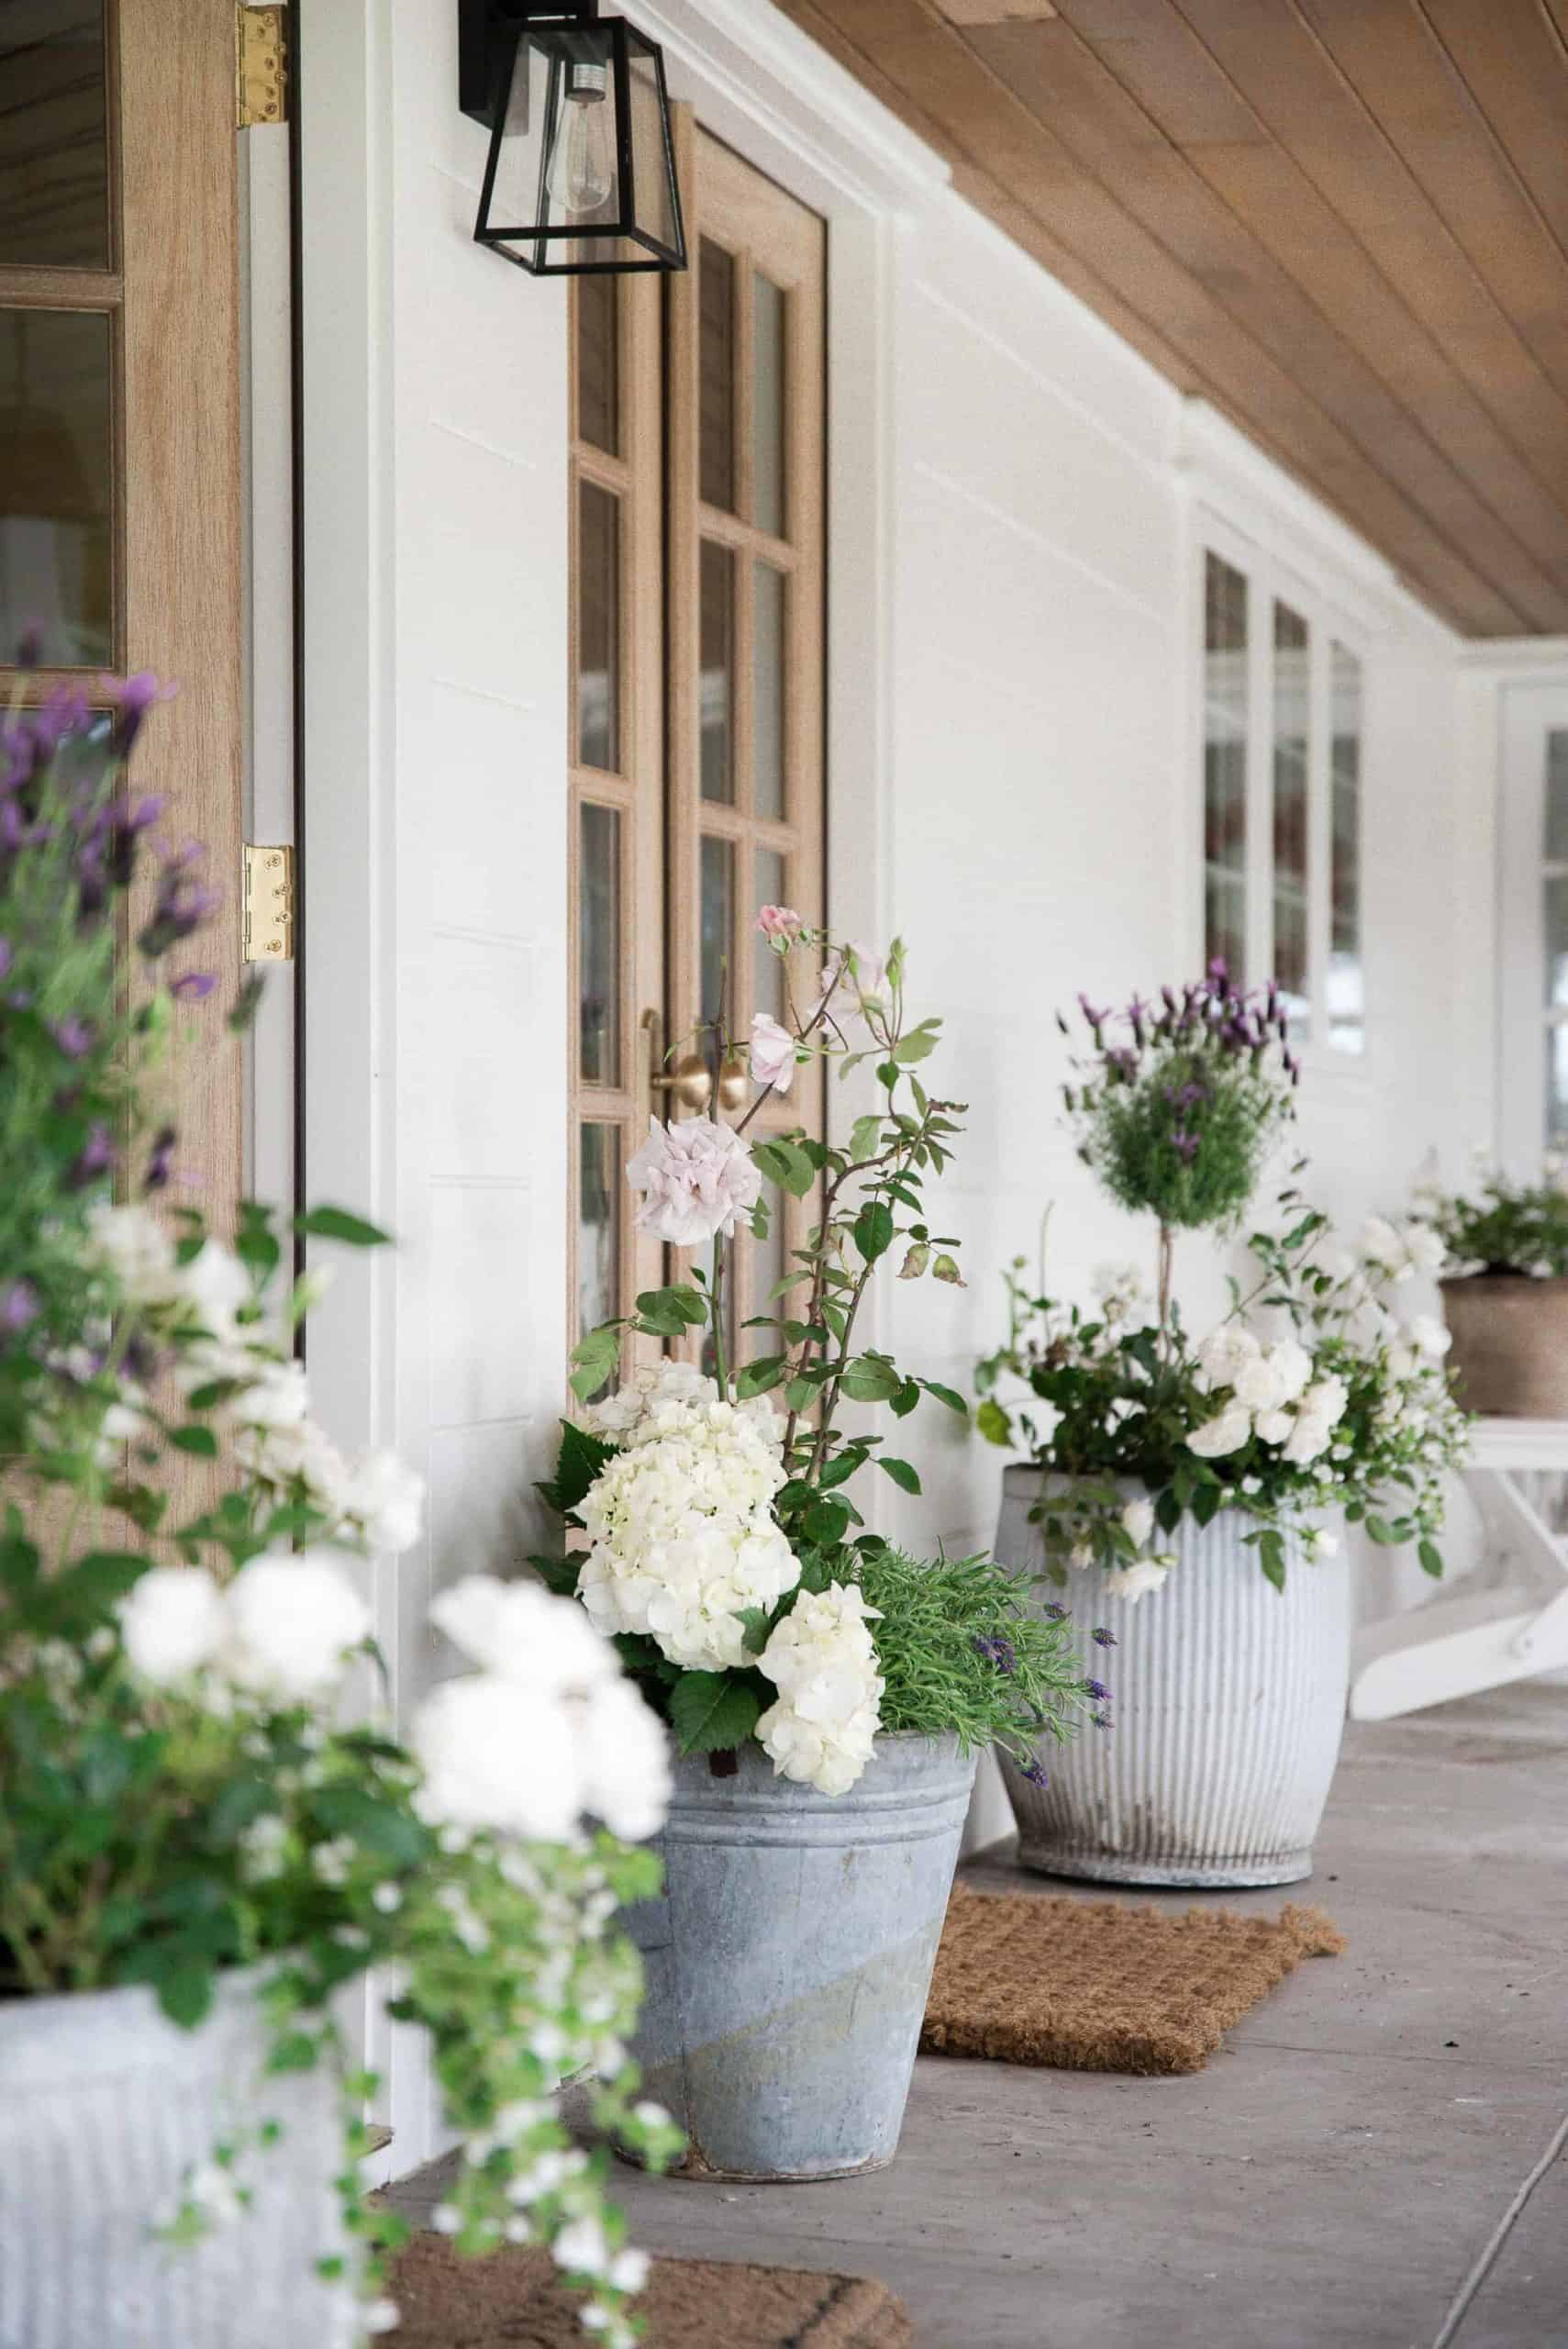 Gorgeous flower pots on a farmhouse porch with white flowers and lavender.